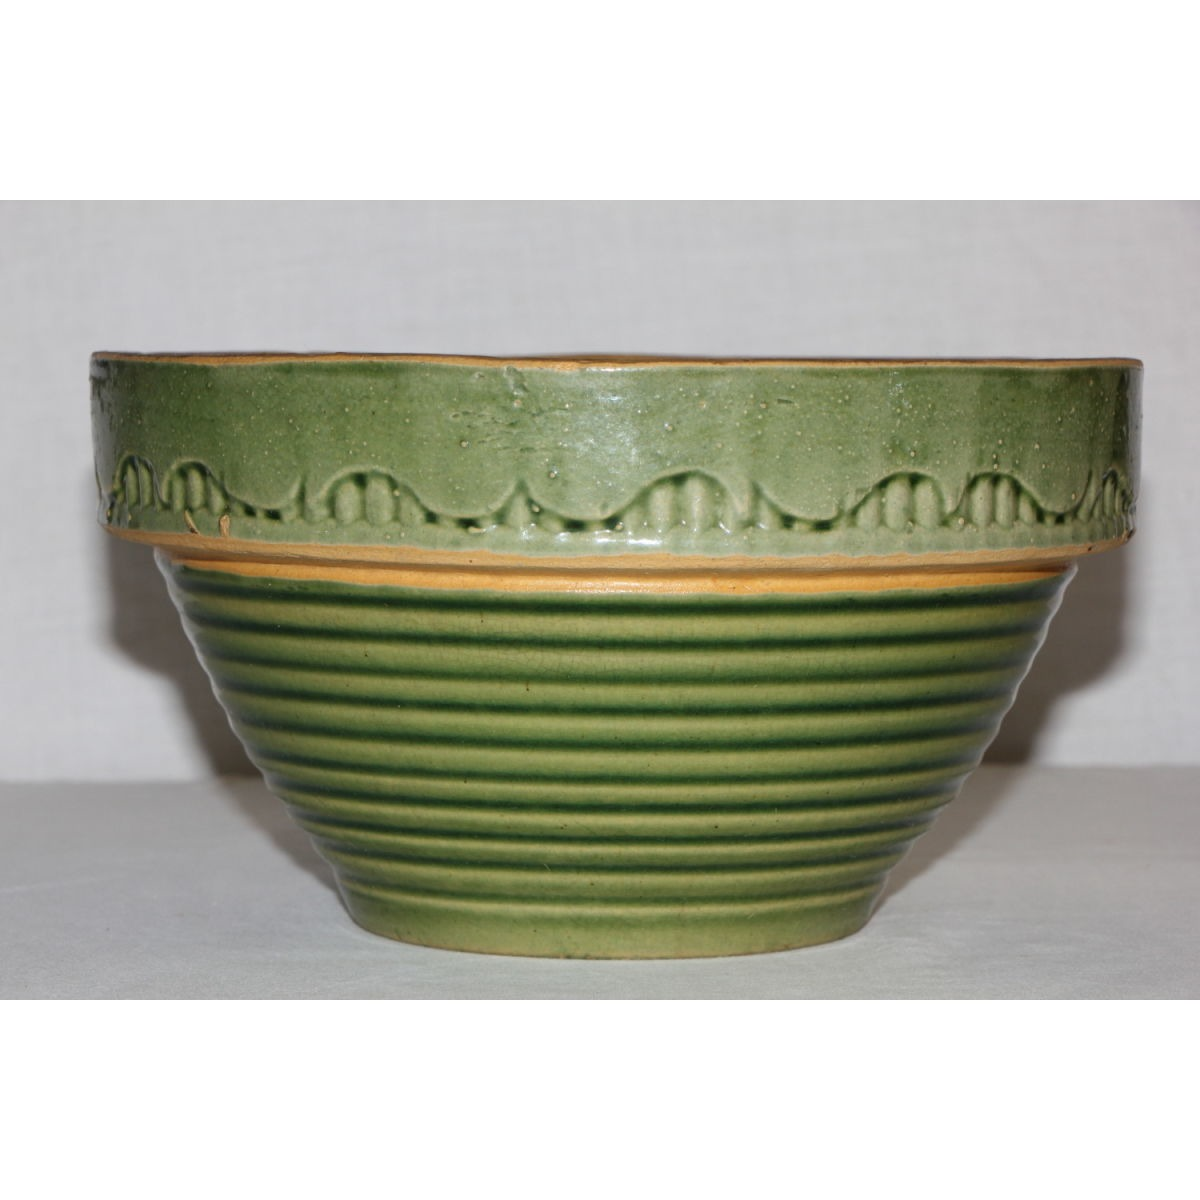 "Scarce Ringware Variant 8.5"" Green Glazed Yellowware Bowl"